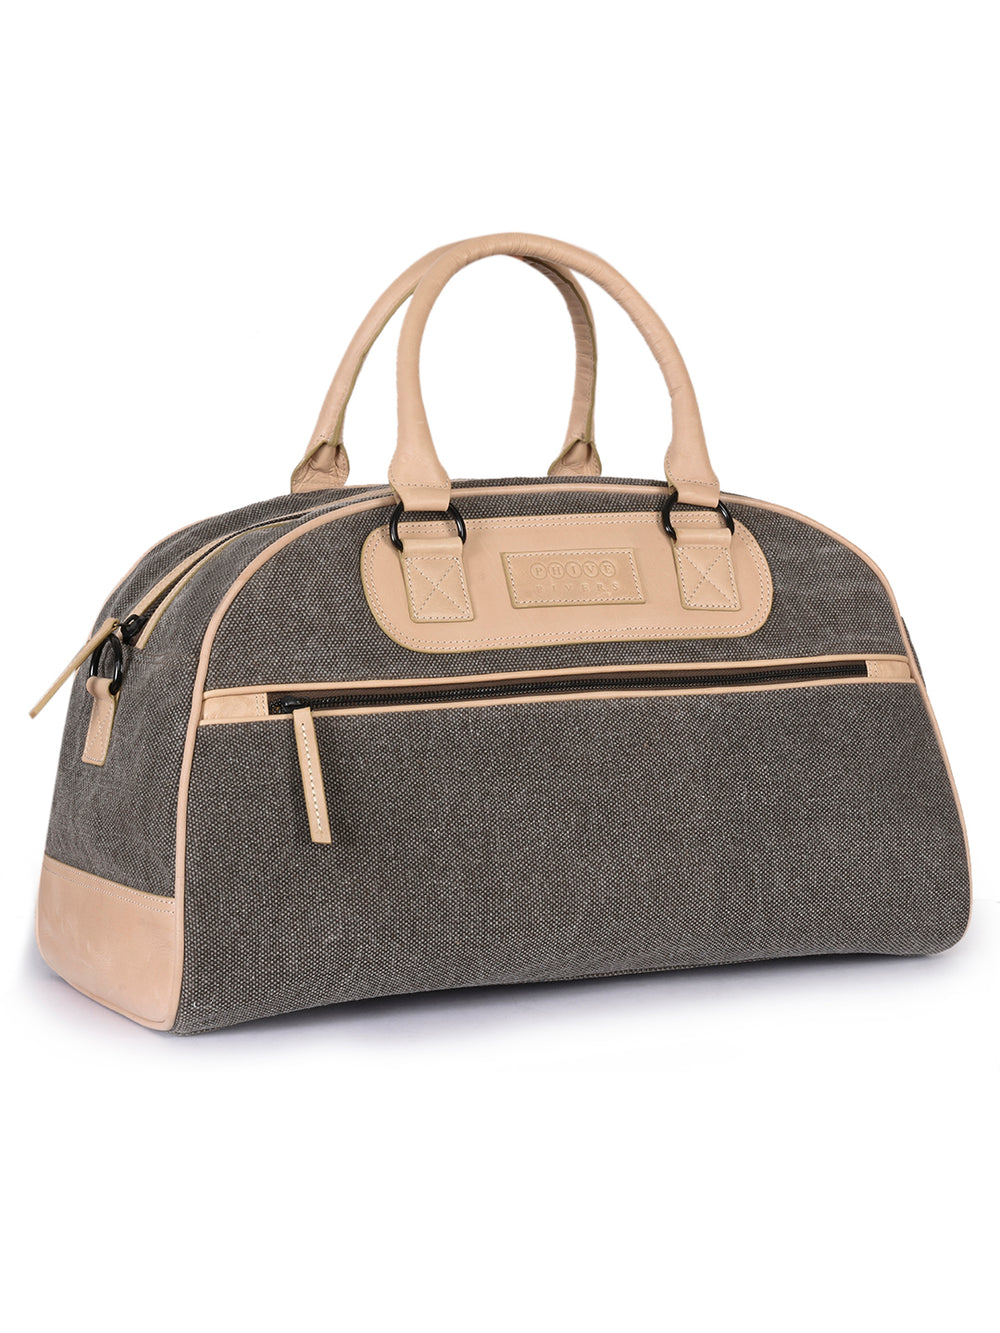 PRM637-Phive Rivers Men's Leather and Canvas Olive Green Duffle Bag-Home > Bags > Crossbody Bags-Phive Rivers-Faeshon.com